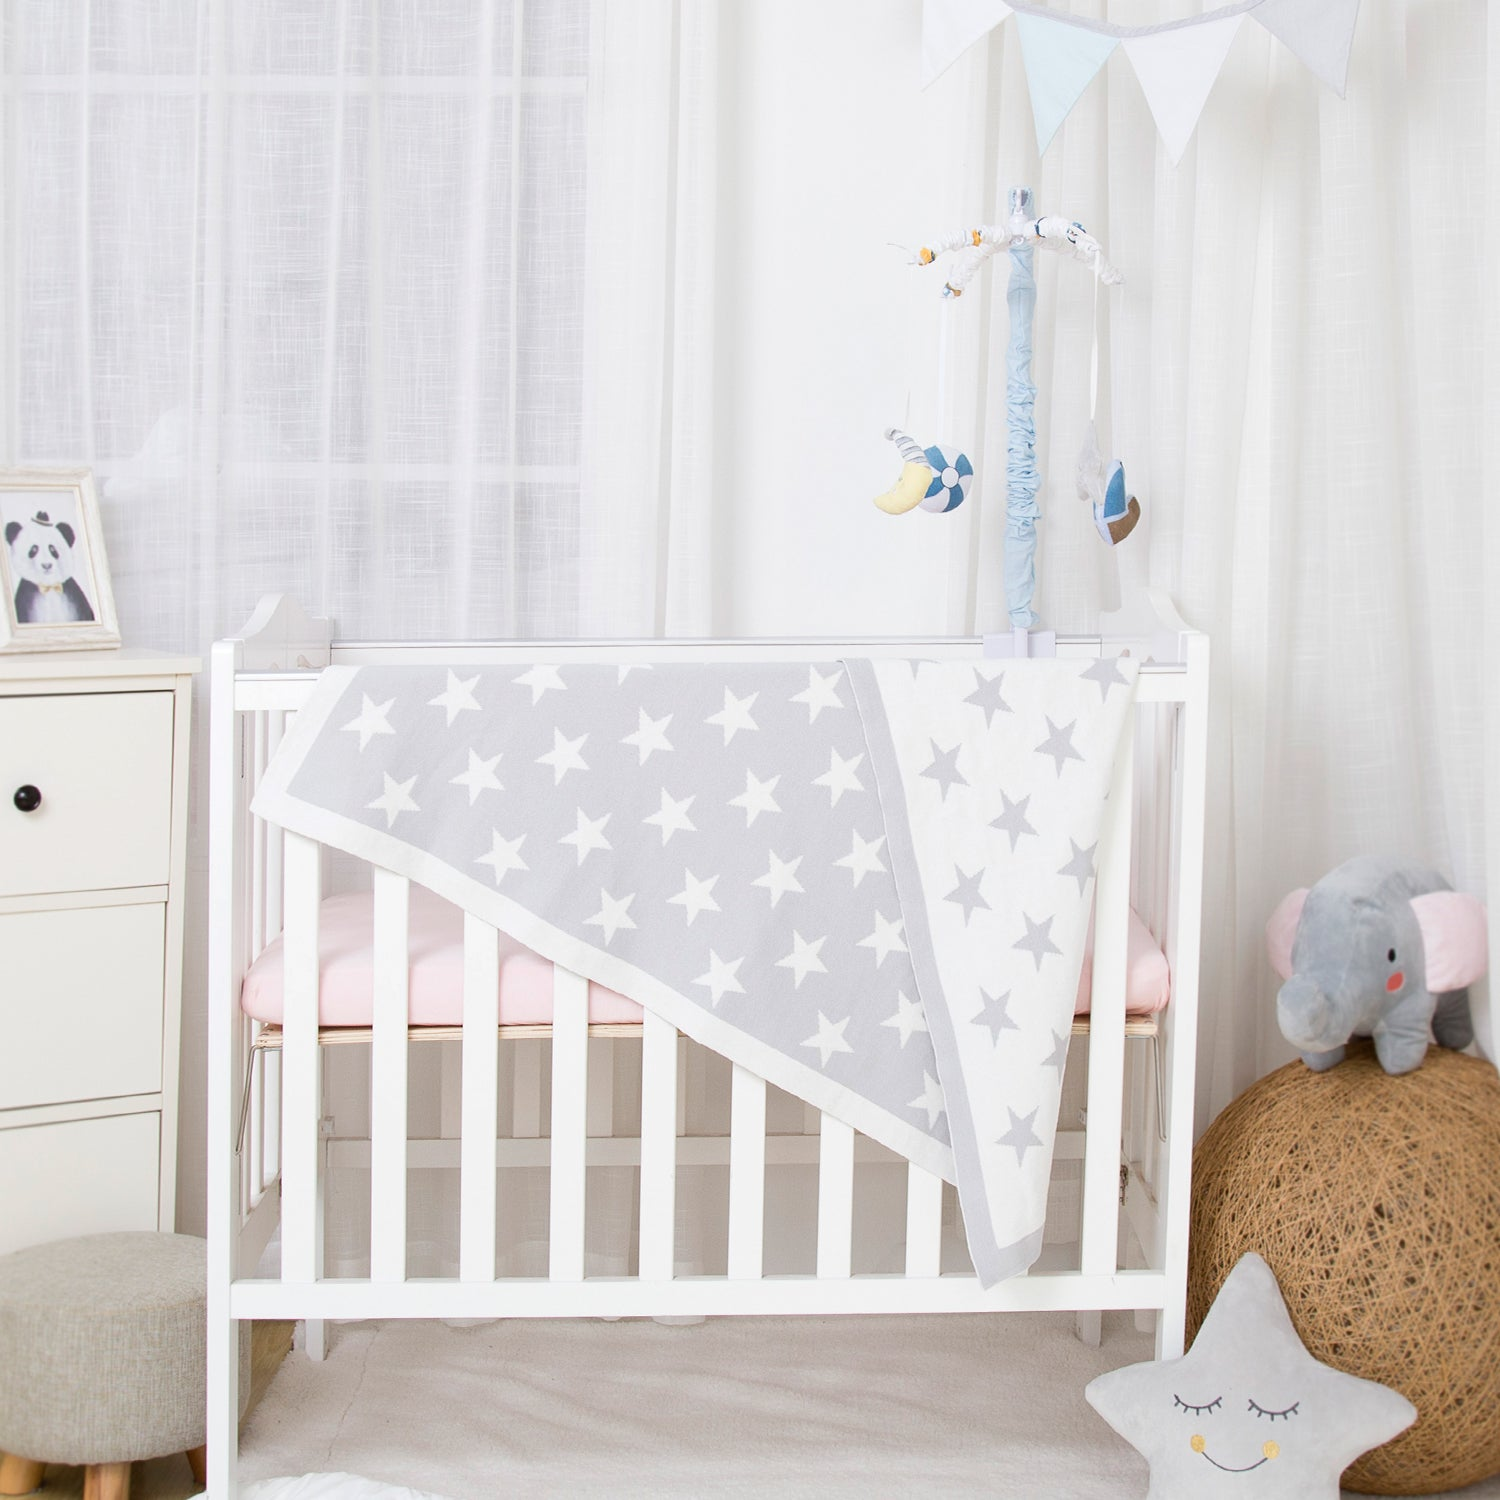 OUT OF STOCK - 100% Cotton Sweater Knit Baby Blanket - Stars